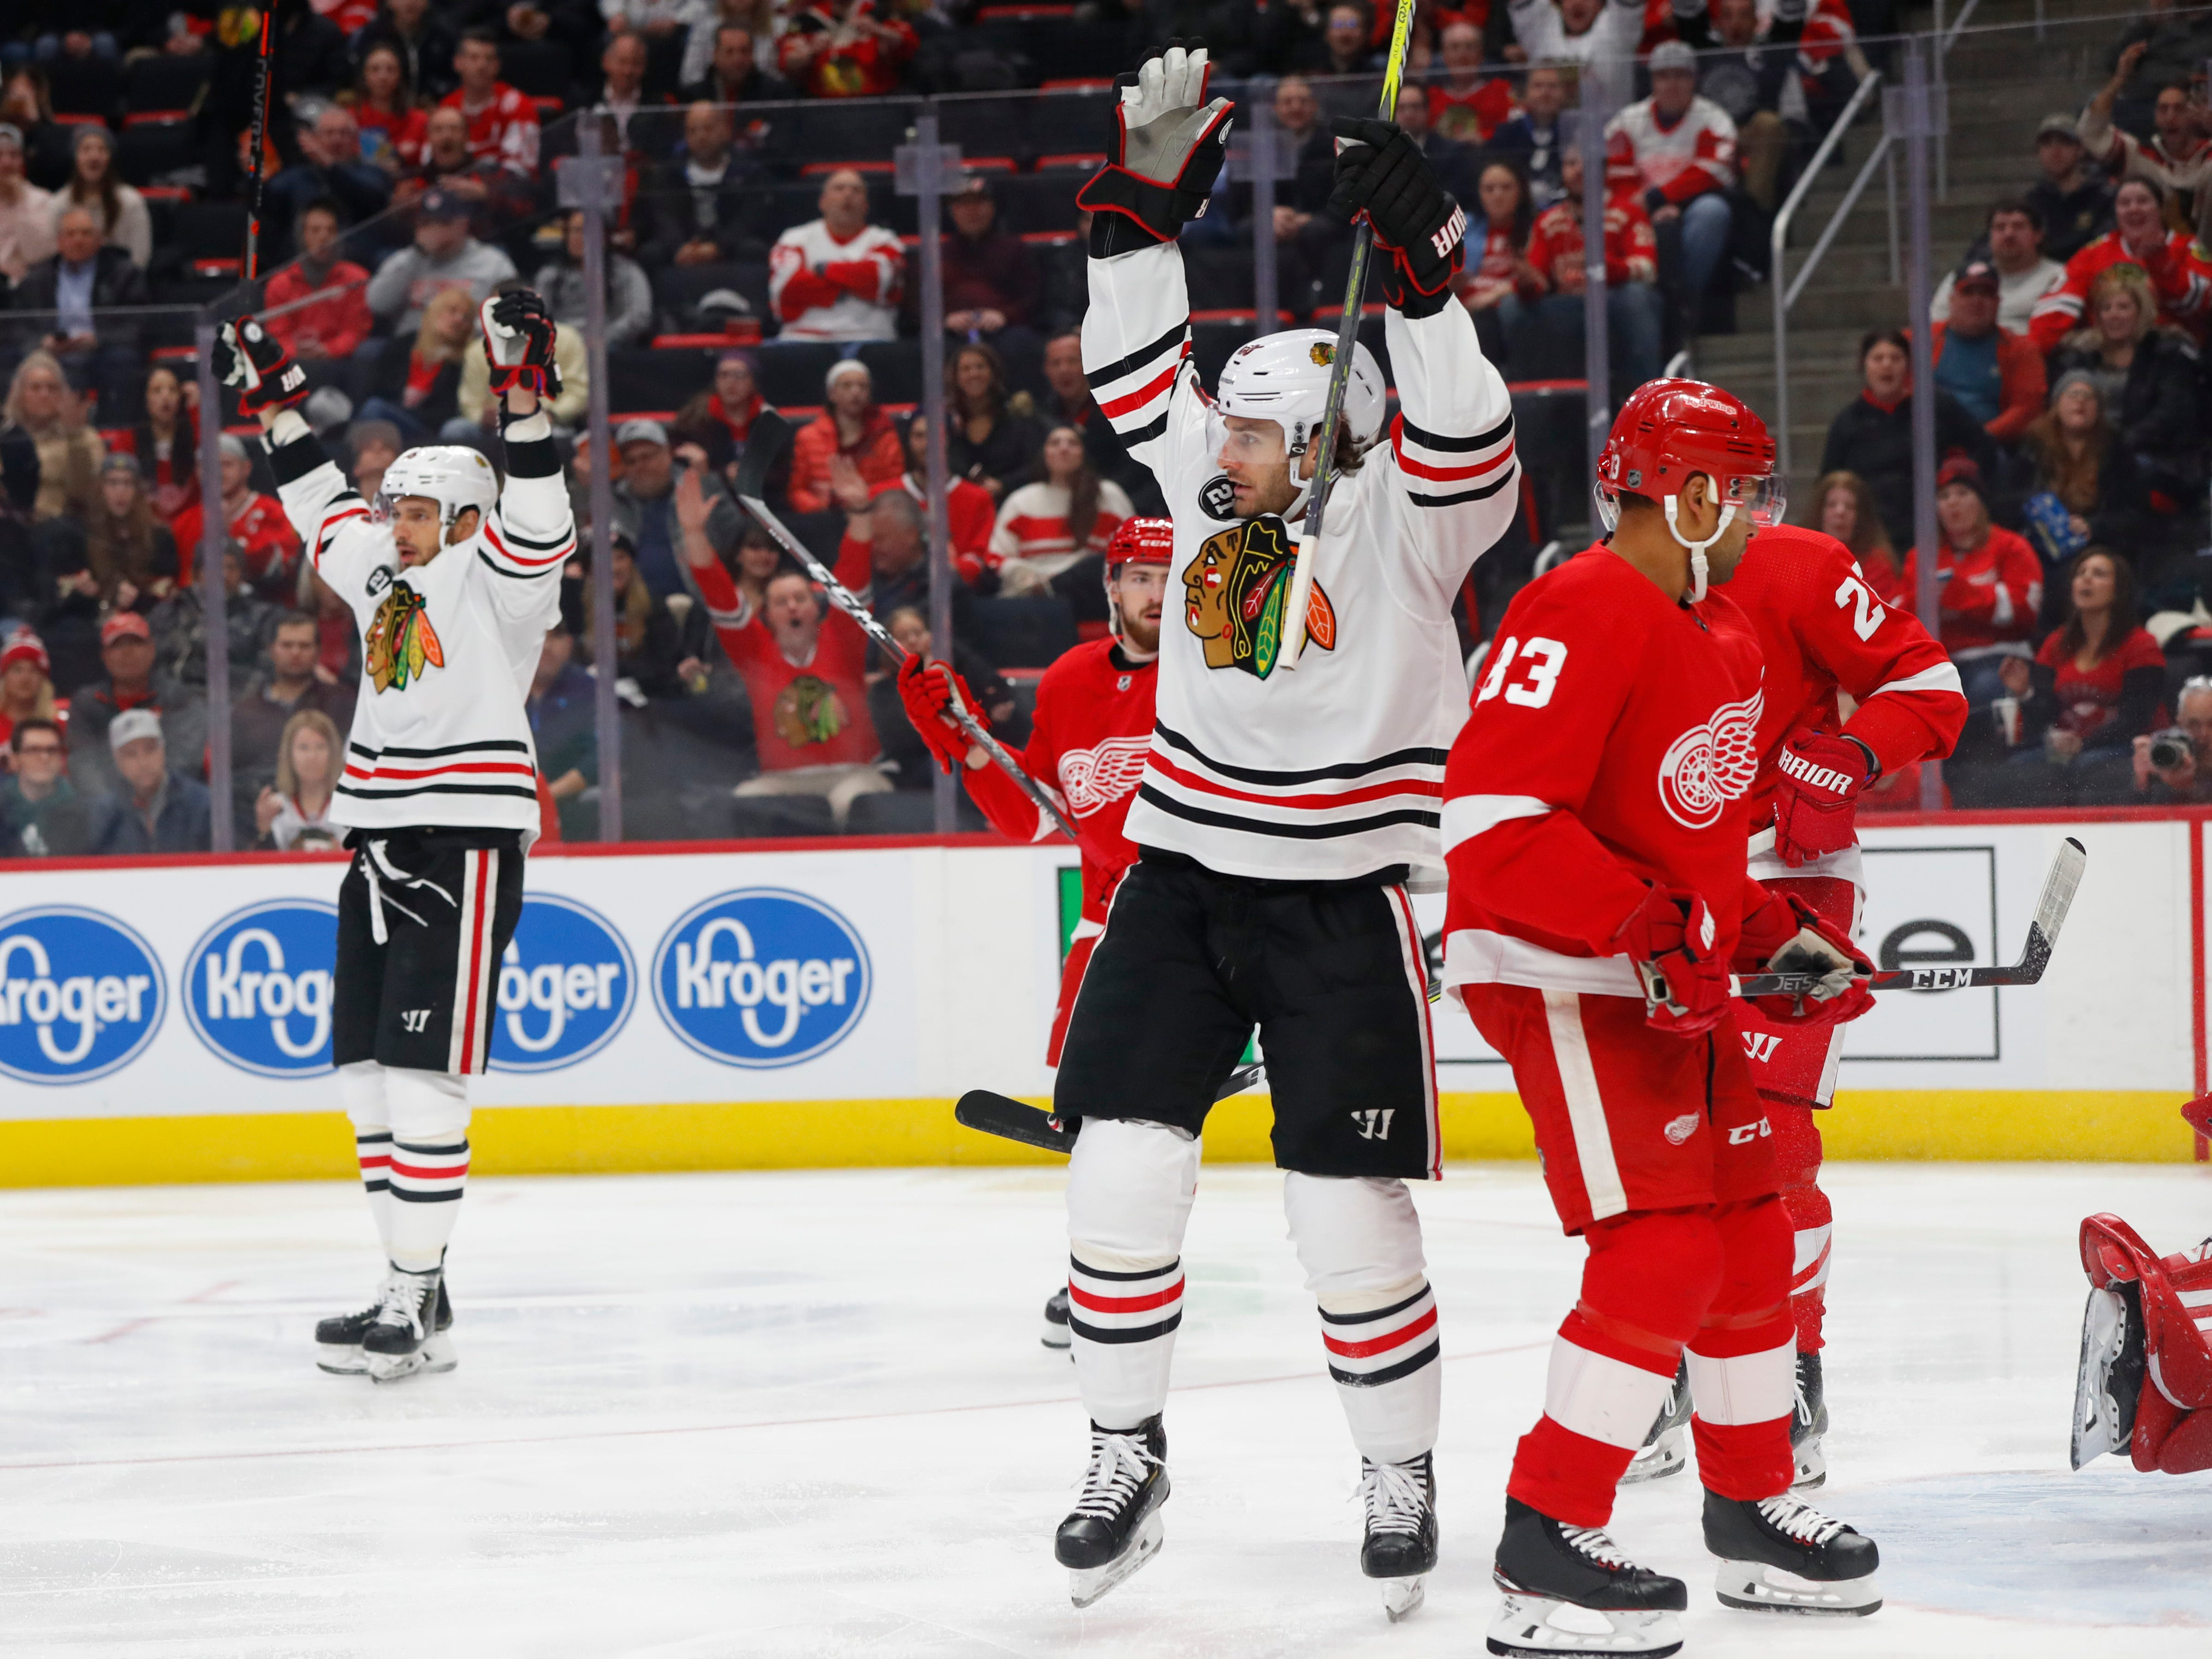 Chicago Blackhawks center Artem Anisimov, left, celebrates his goal with Brandon Saad, center, against the Detroit Red Wings in the first period of an NHL hockey game Wednesday, Feb. 20, 2019, in Detroit.